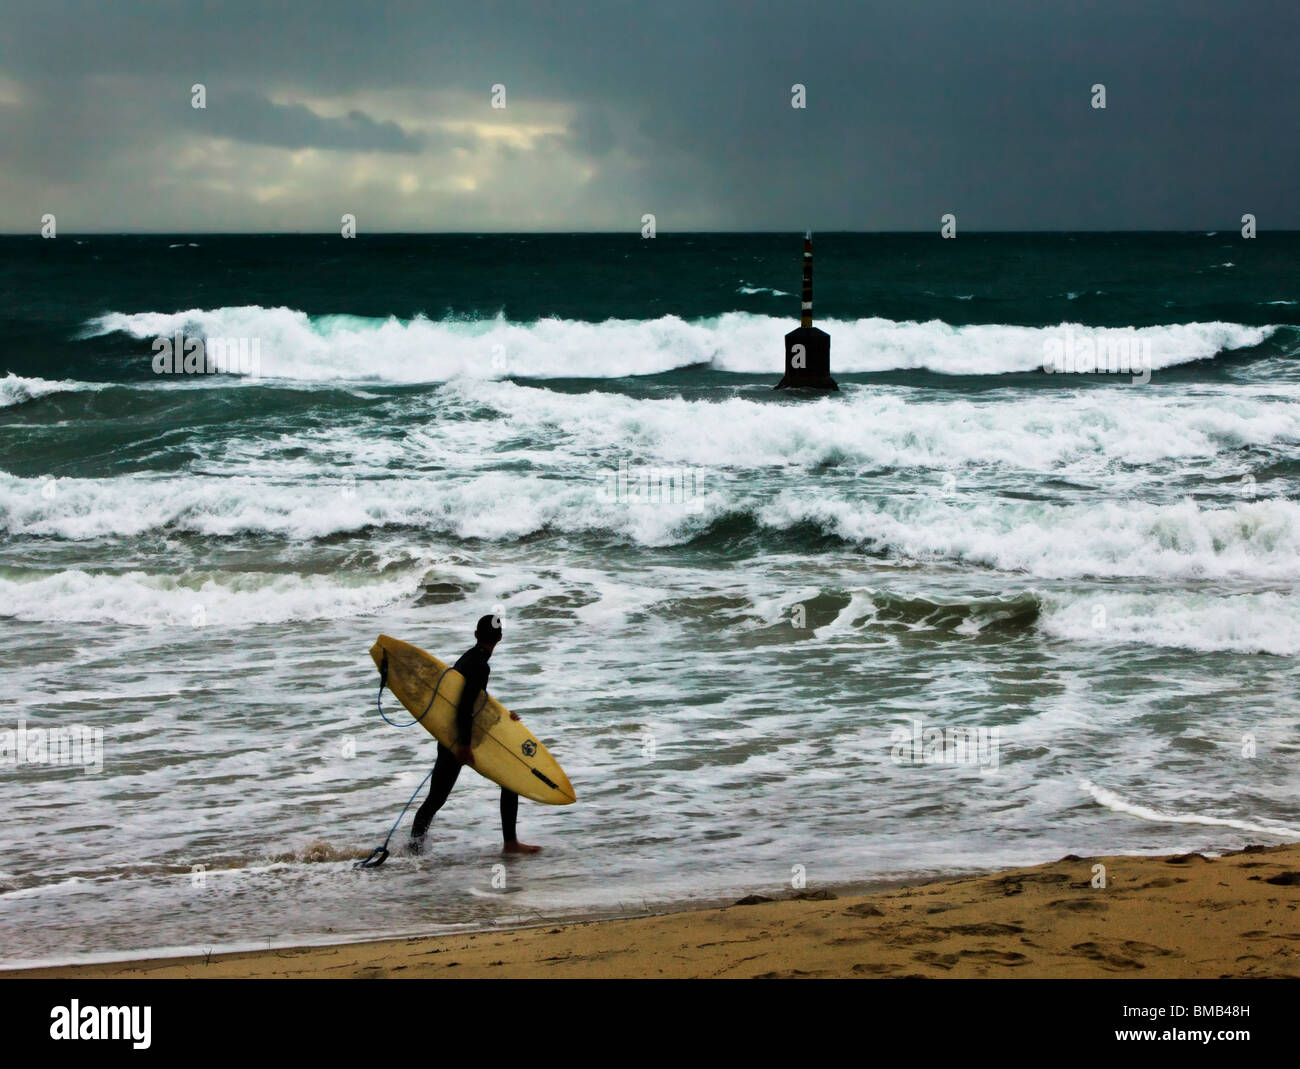 A surfer surveying the waves at Cottesloe Beach. Perth, Western Australia - Stock Image